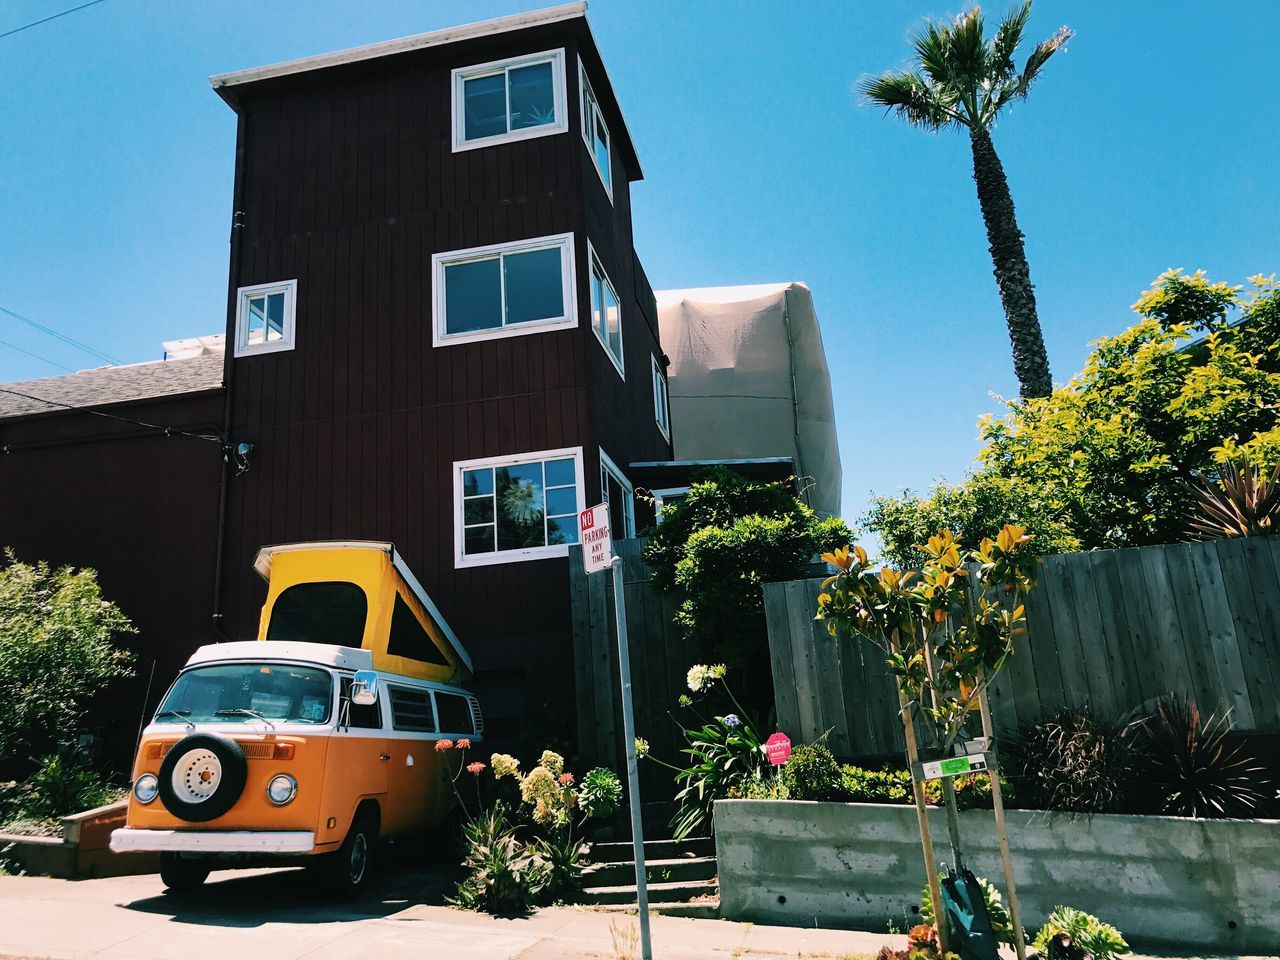 California color palette 🎨 // VW Bus Architecture Building Exterior Built Structure Car Land Vehicle Transportation Day Tree Outdoors No People City Sky